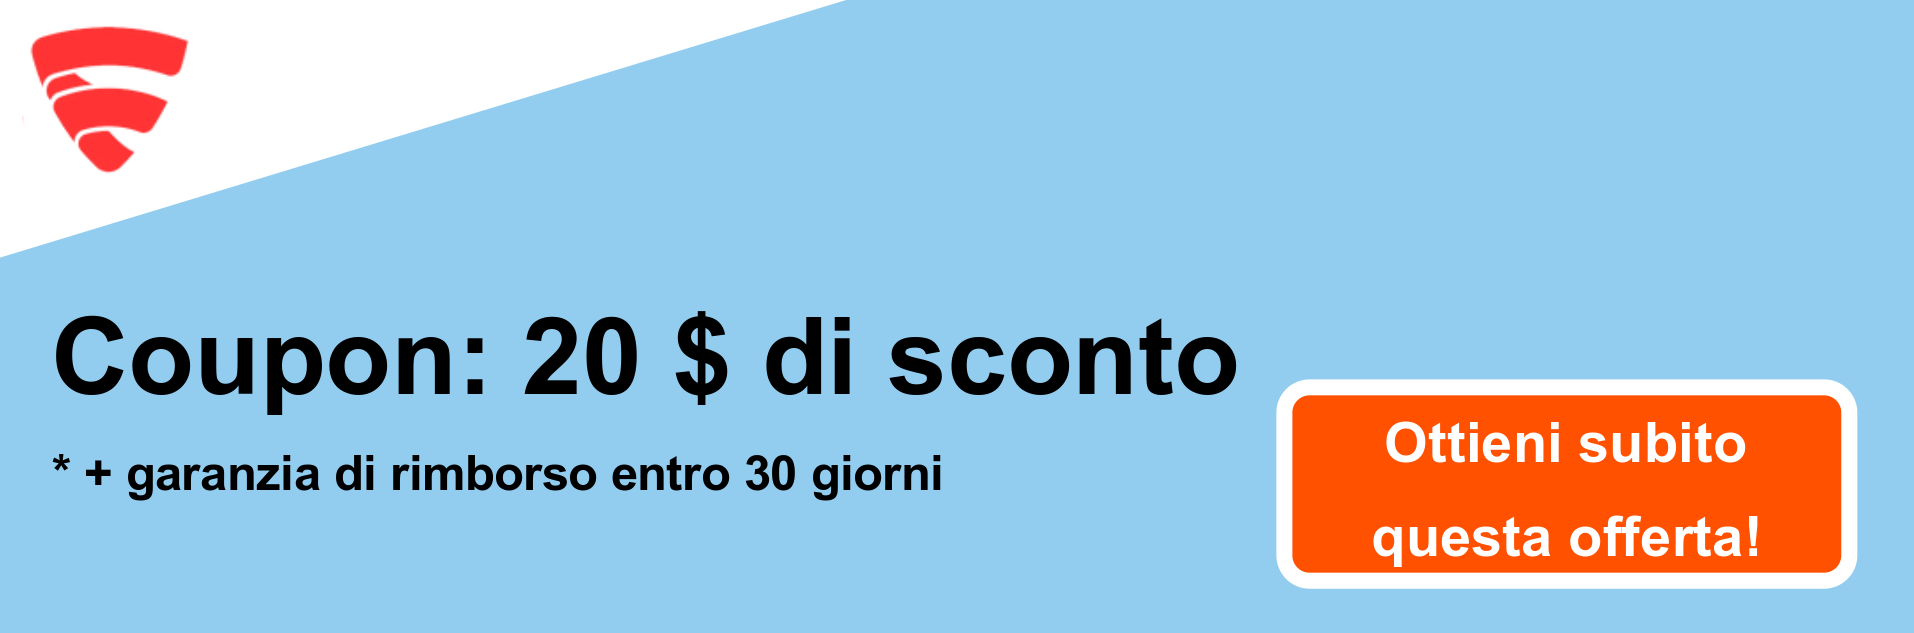 Coupon FSecureFreedome - $ 20 di sconto